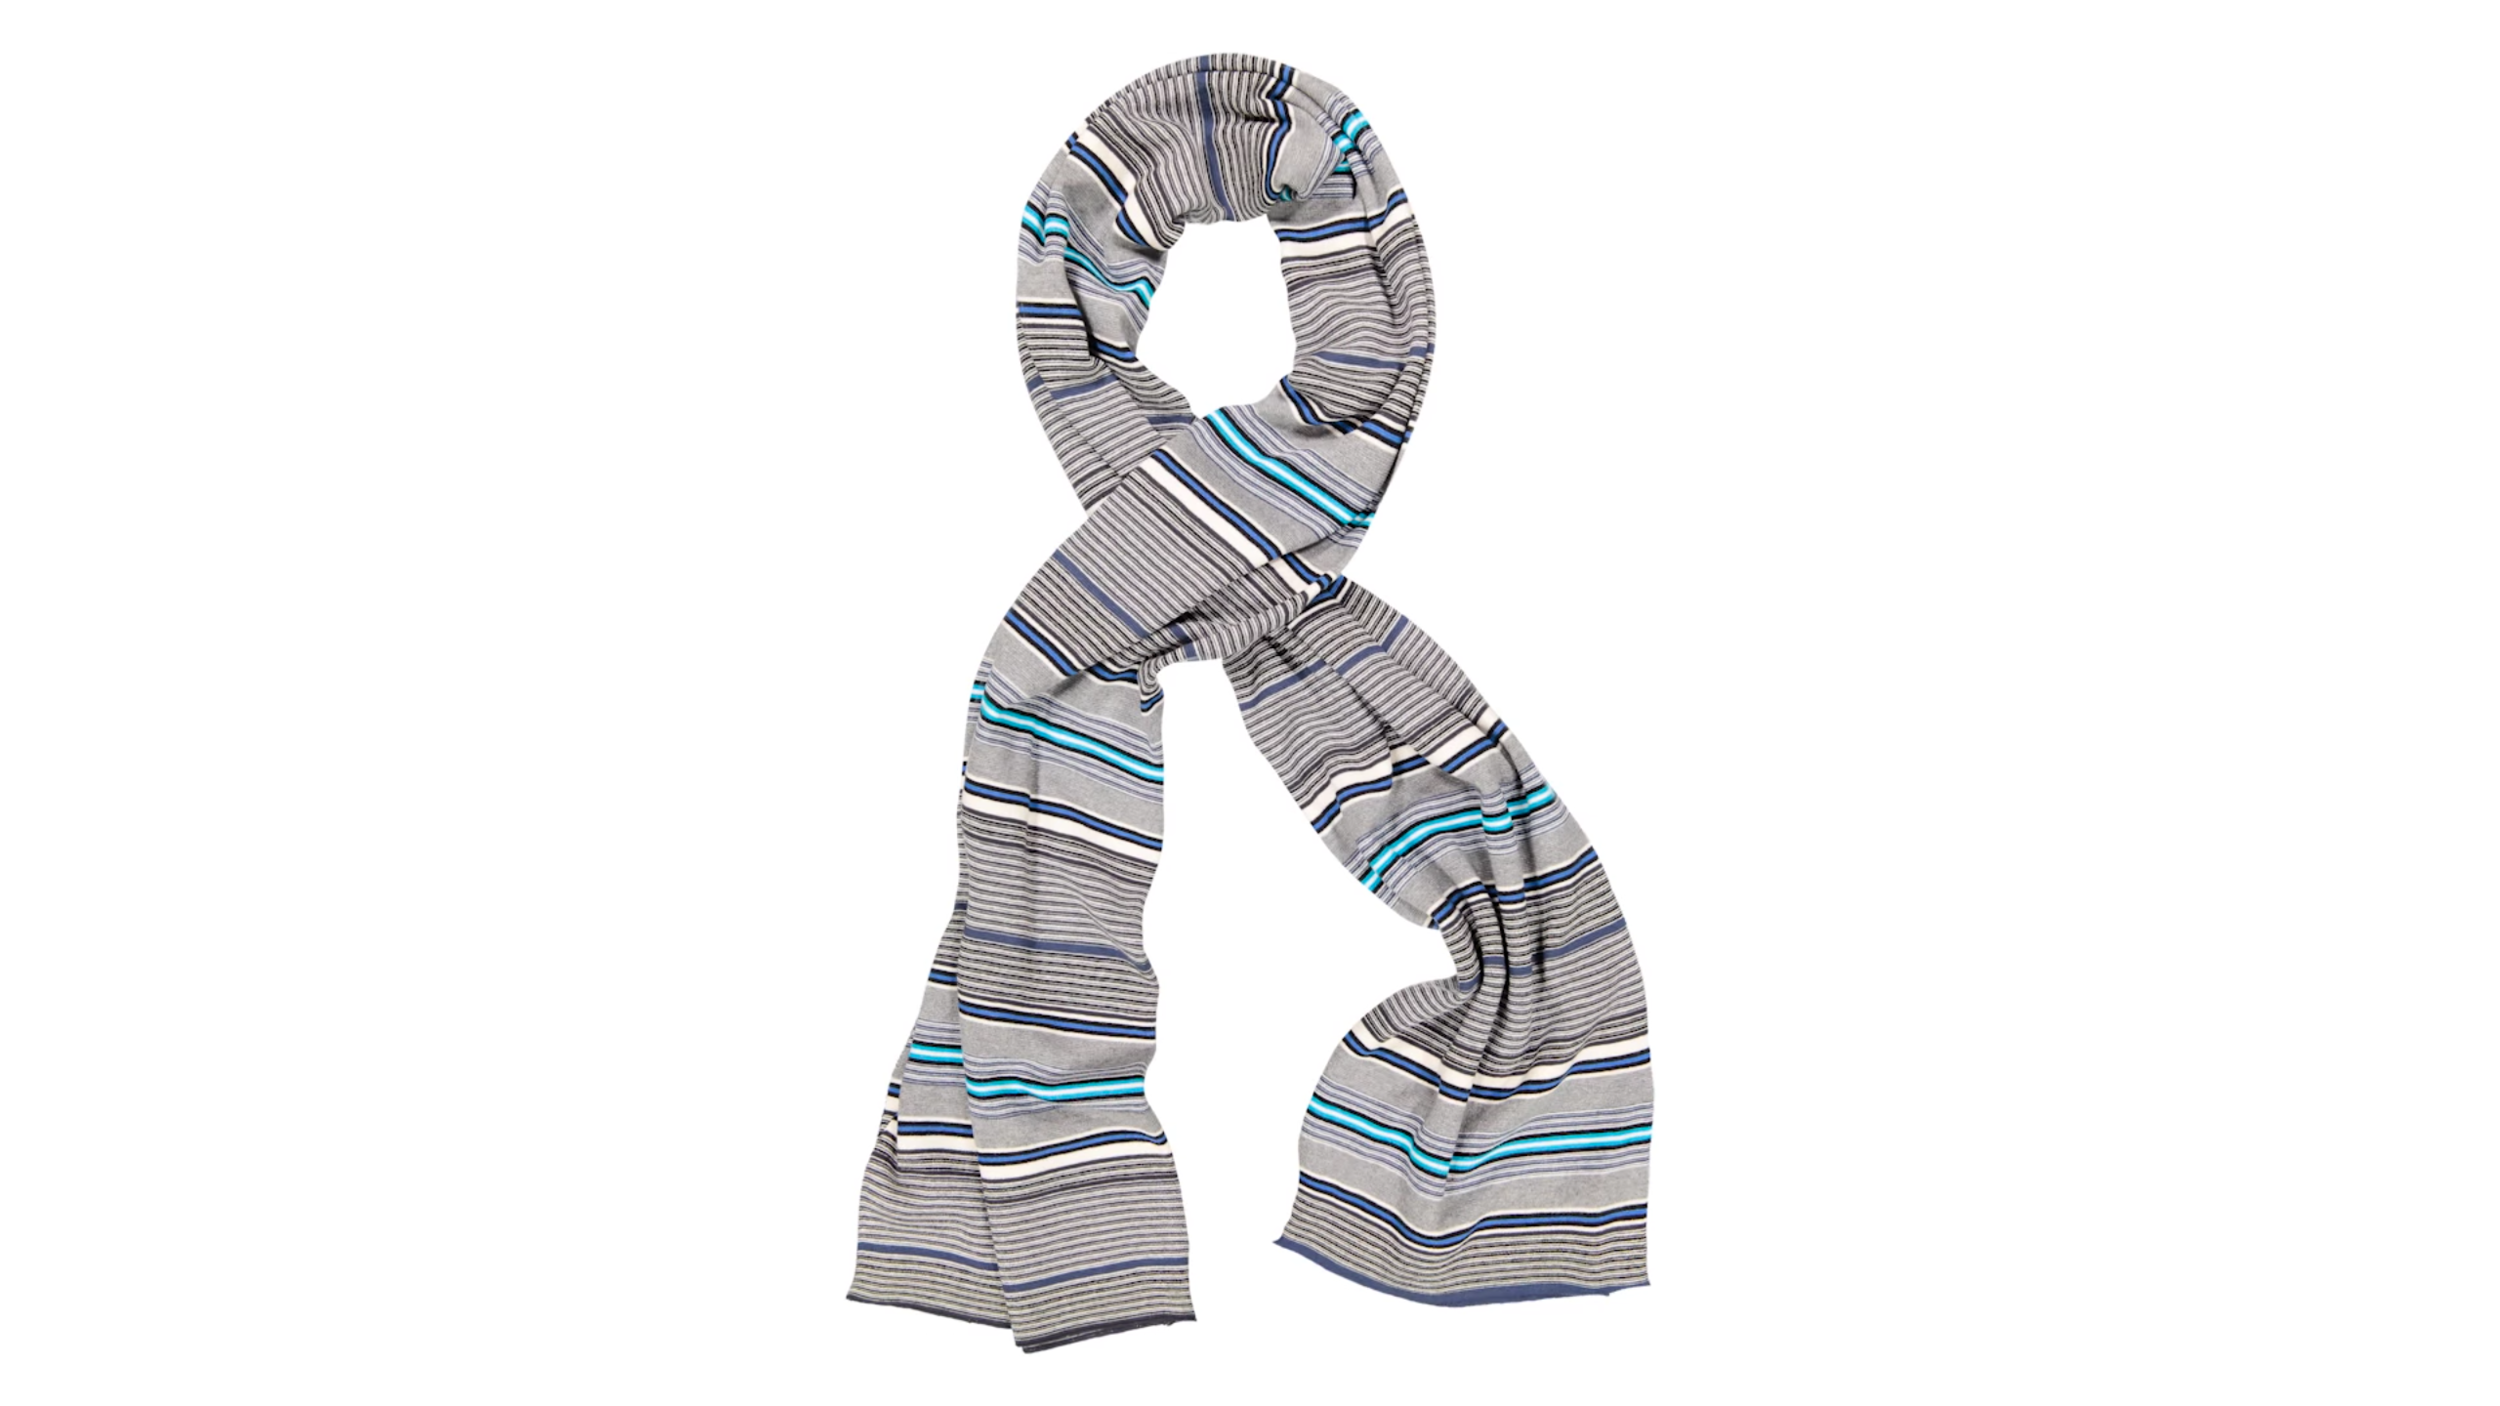 When lighting your shot, cast it directly into the middle of the scarf. This style already showcases a lot of shadows due to the creasing, so a more neutral light direction helps make sure the colours and material of the scarf are brought to life.